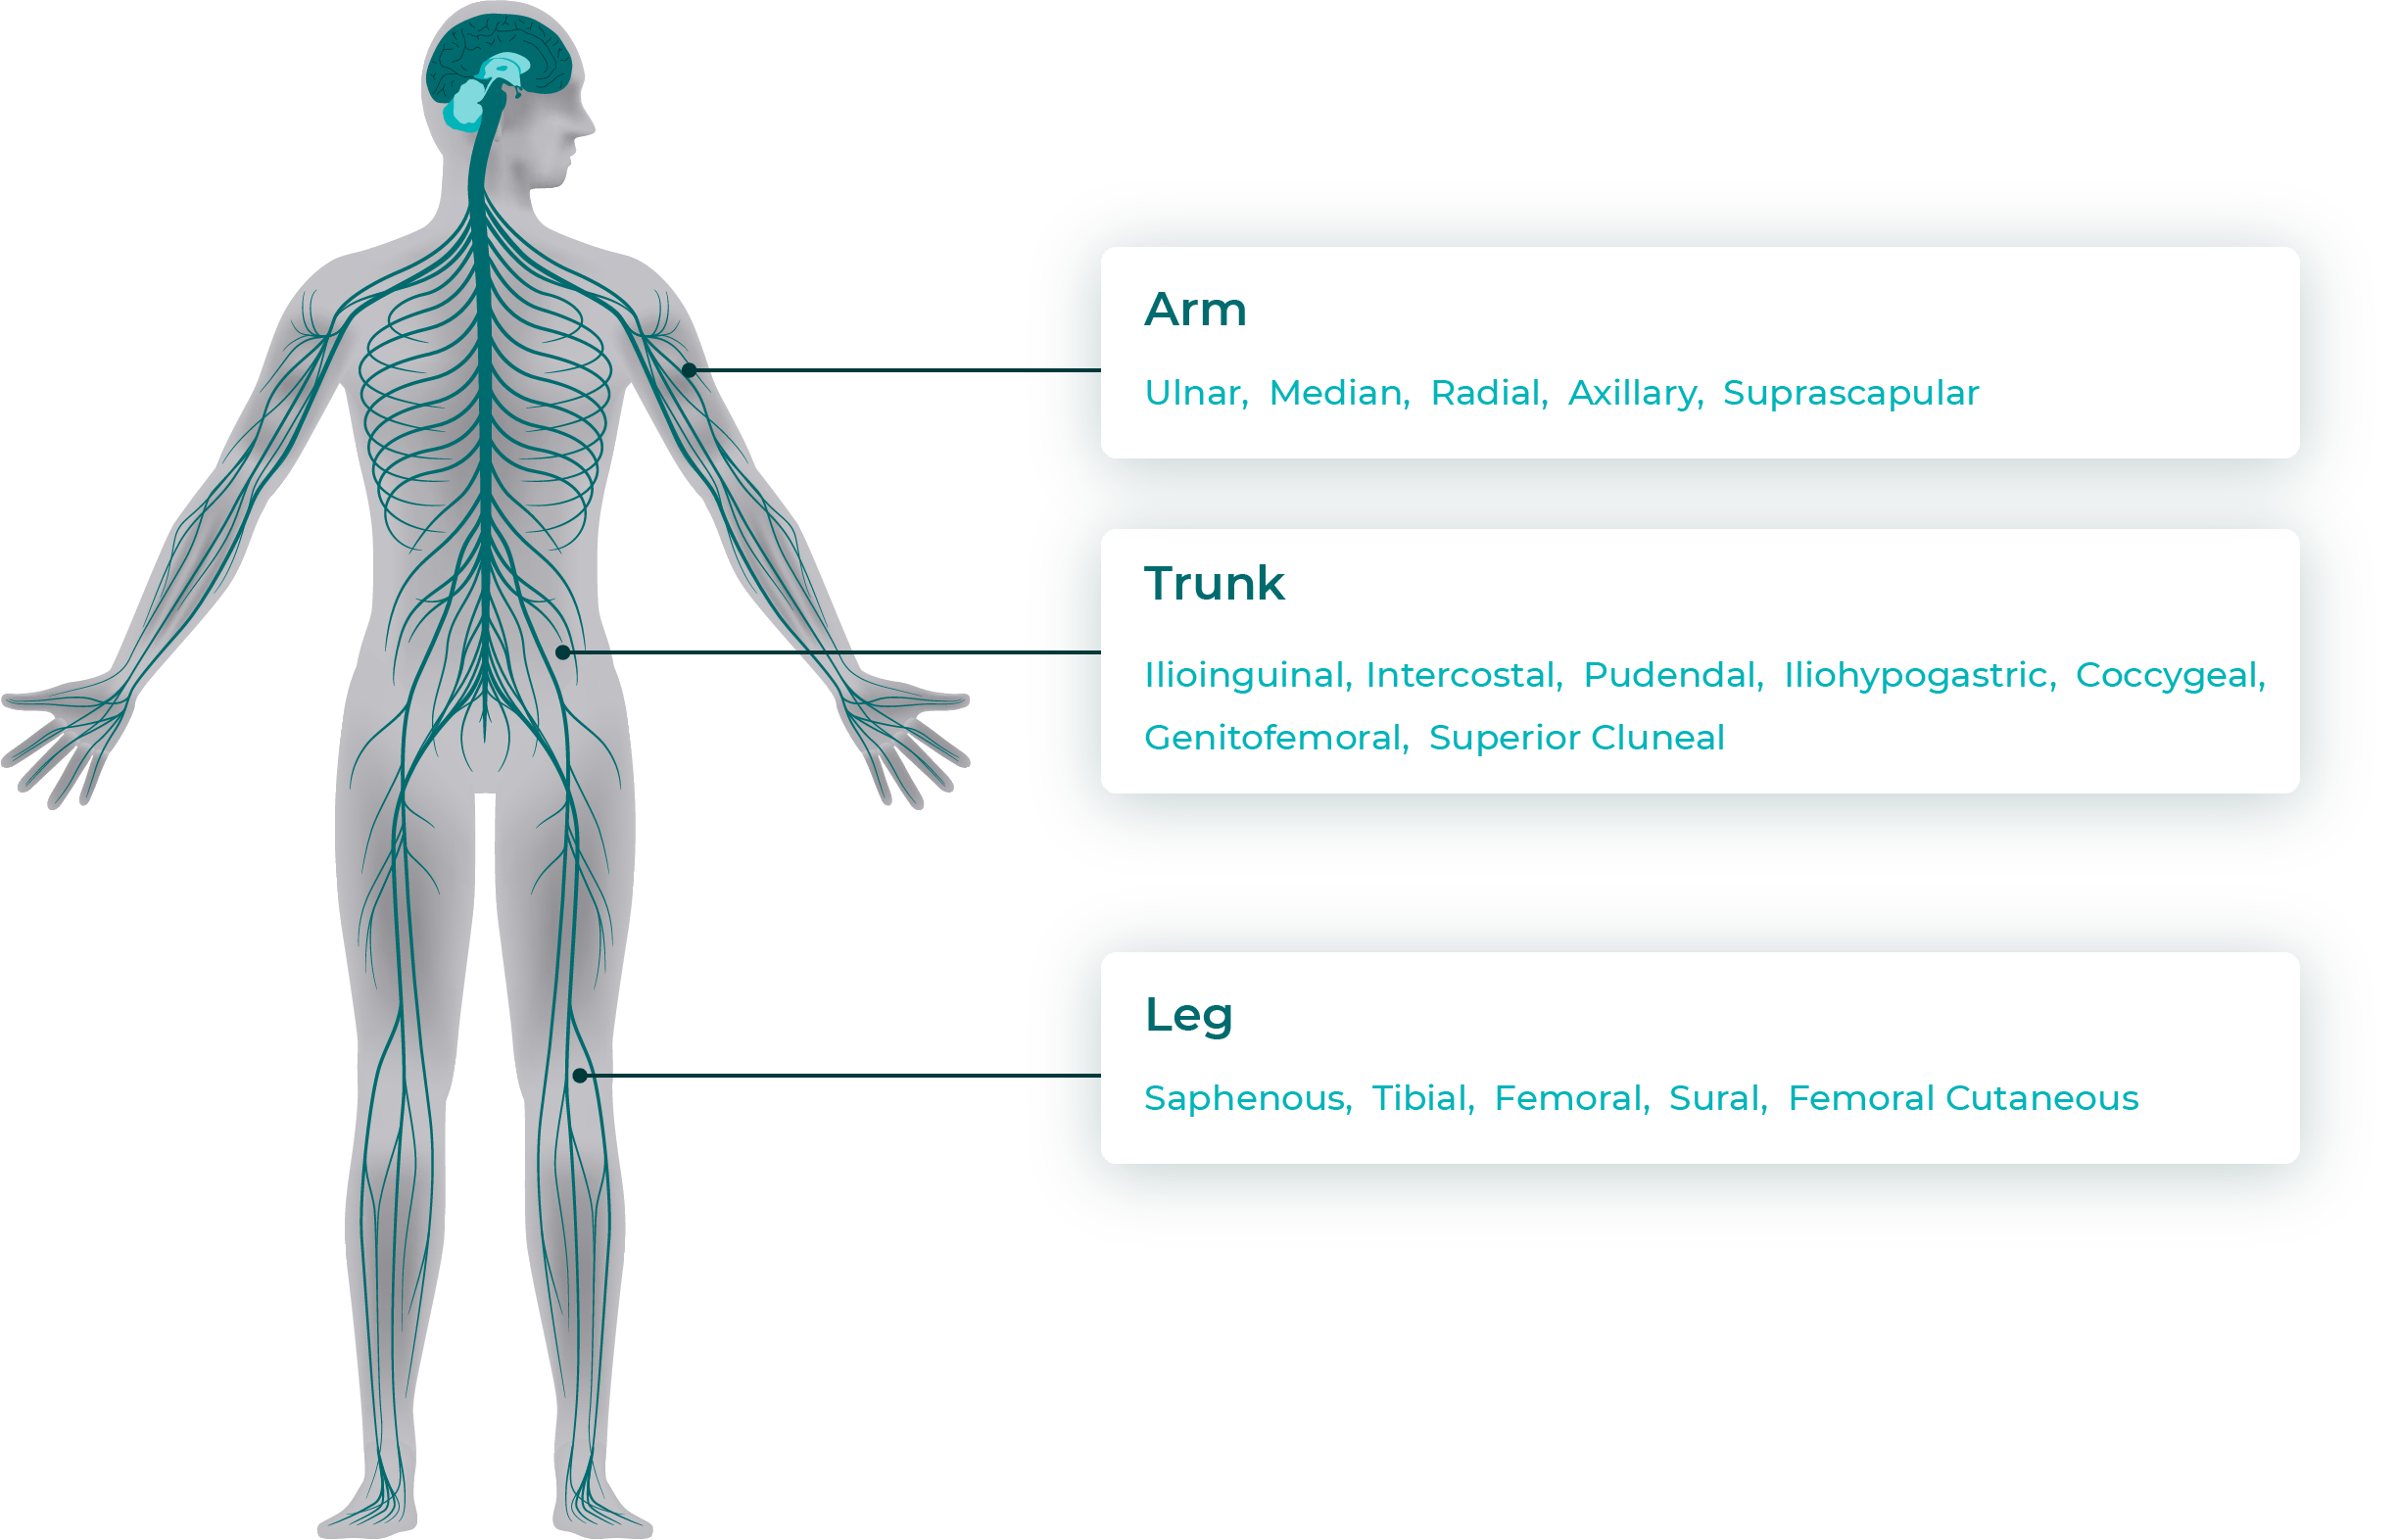 Procedure - StimRouter for Chronic Pain